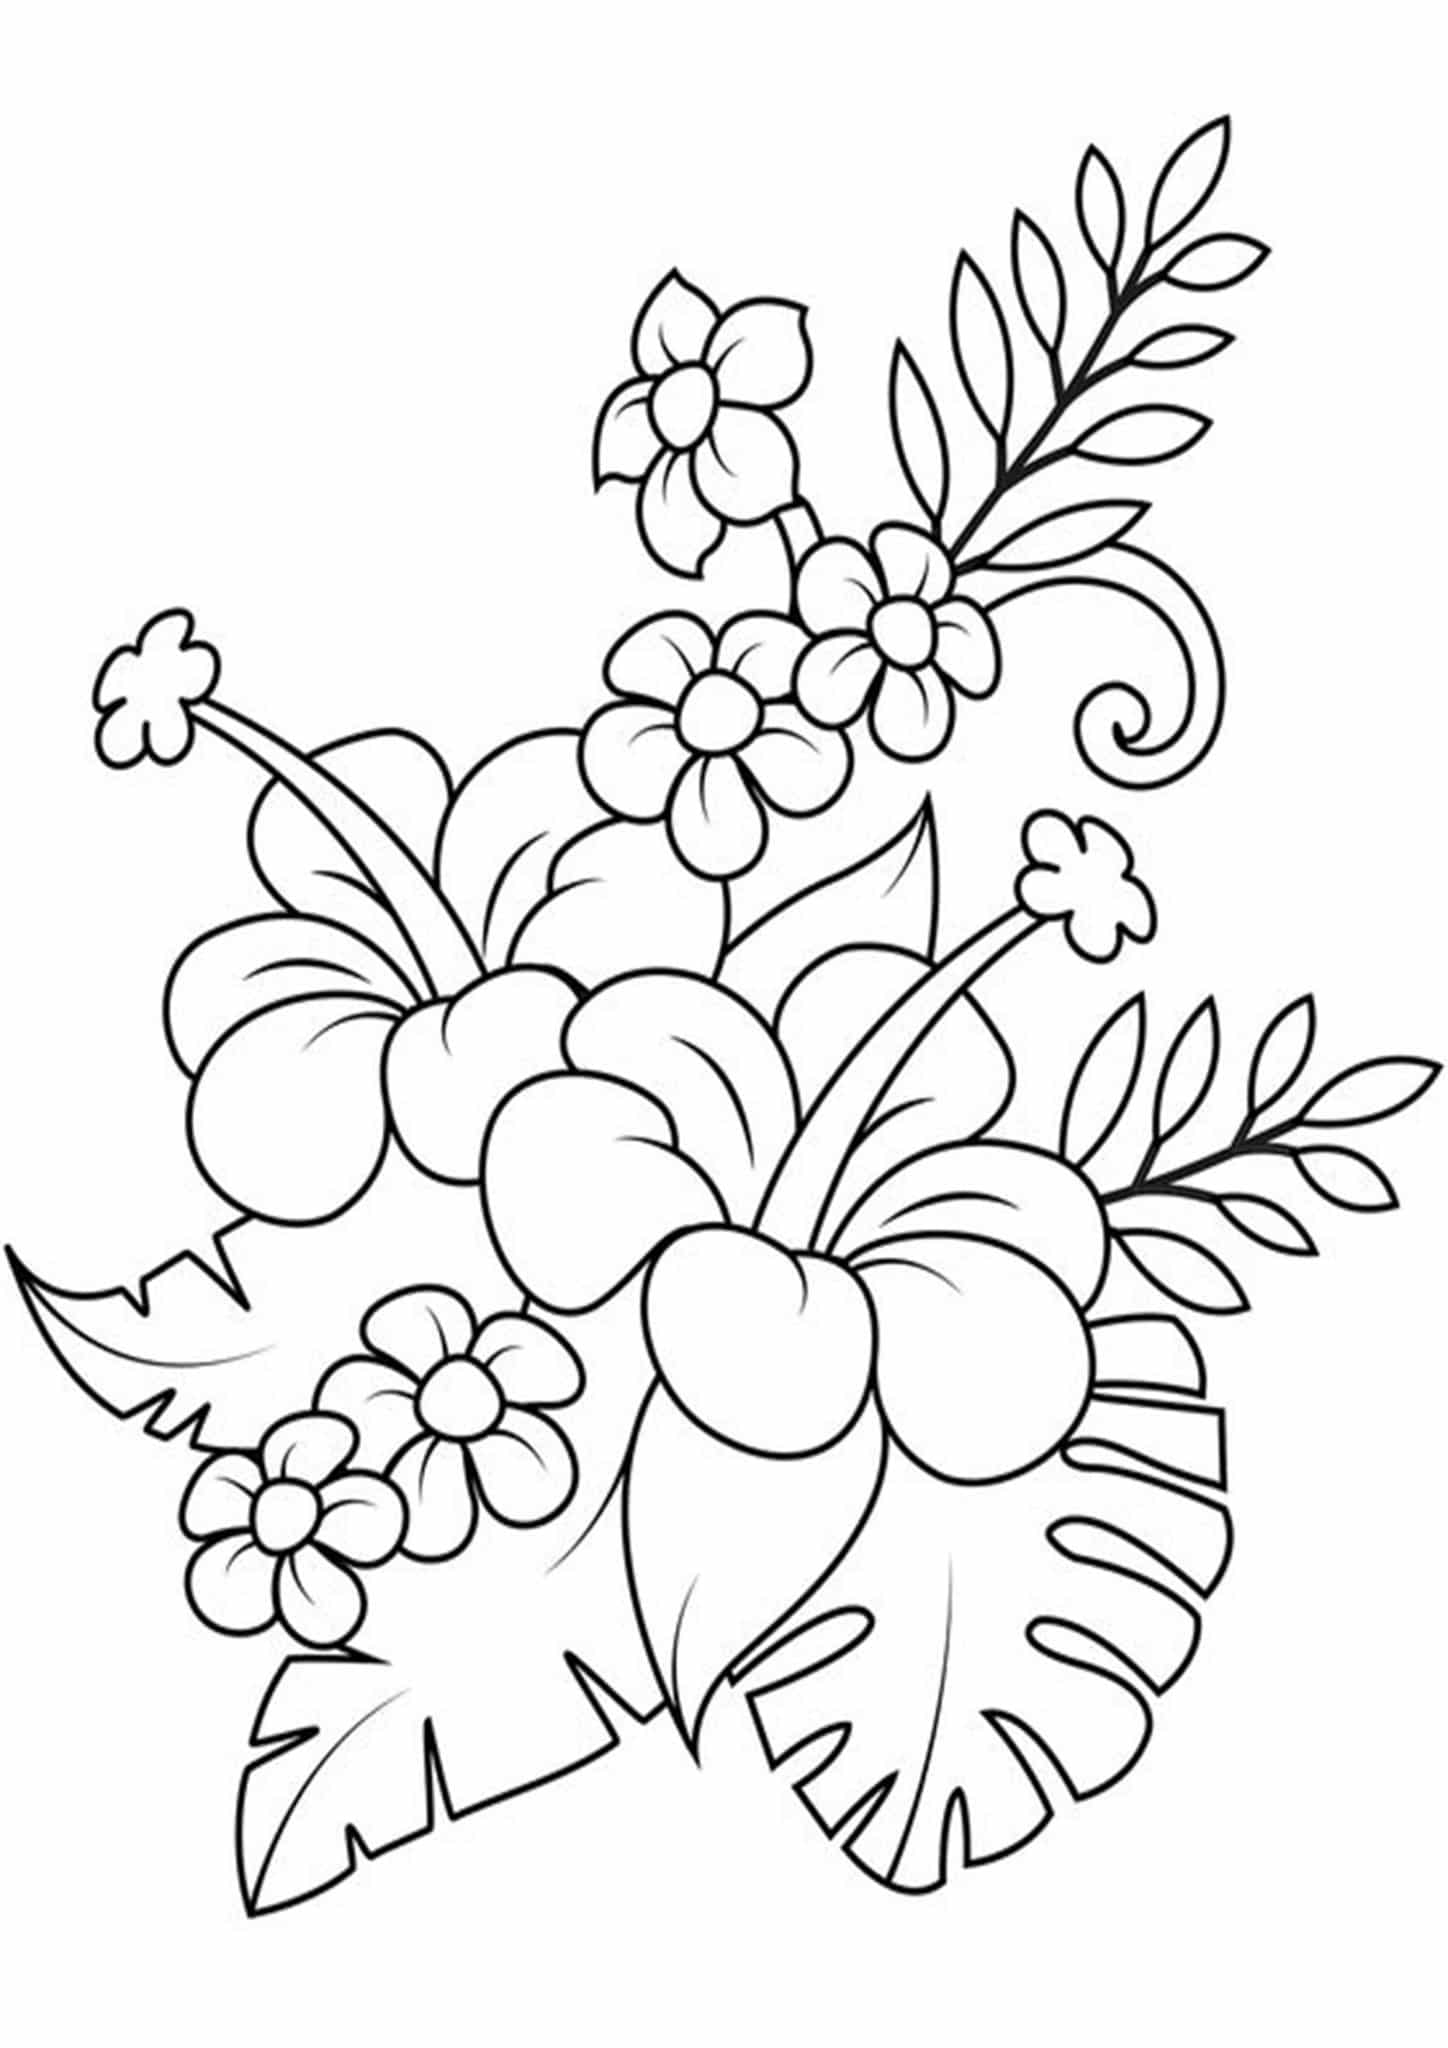 coloring pic of flower flower coloring printables for kids coloring pic flower of